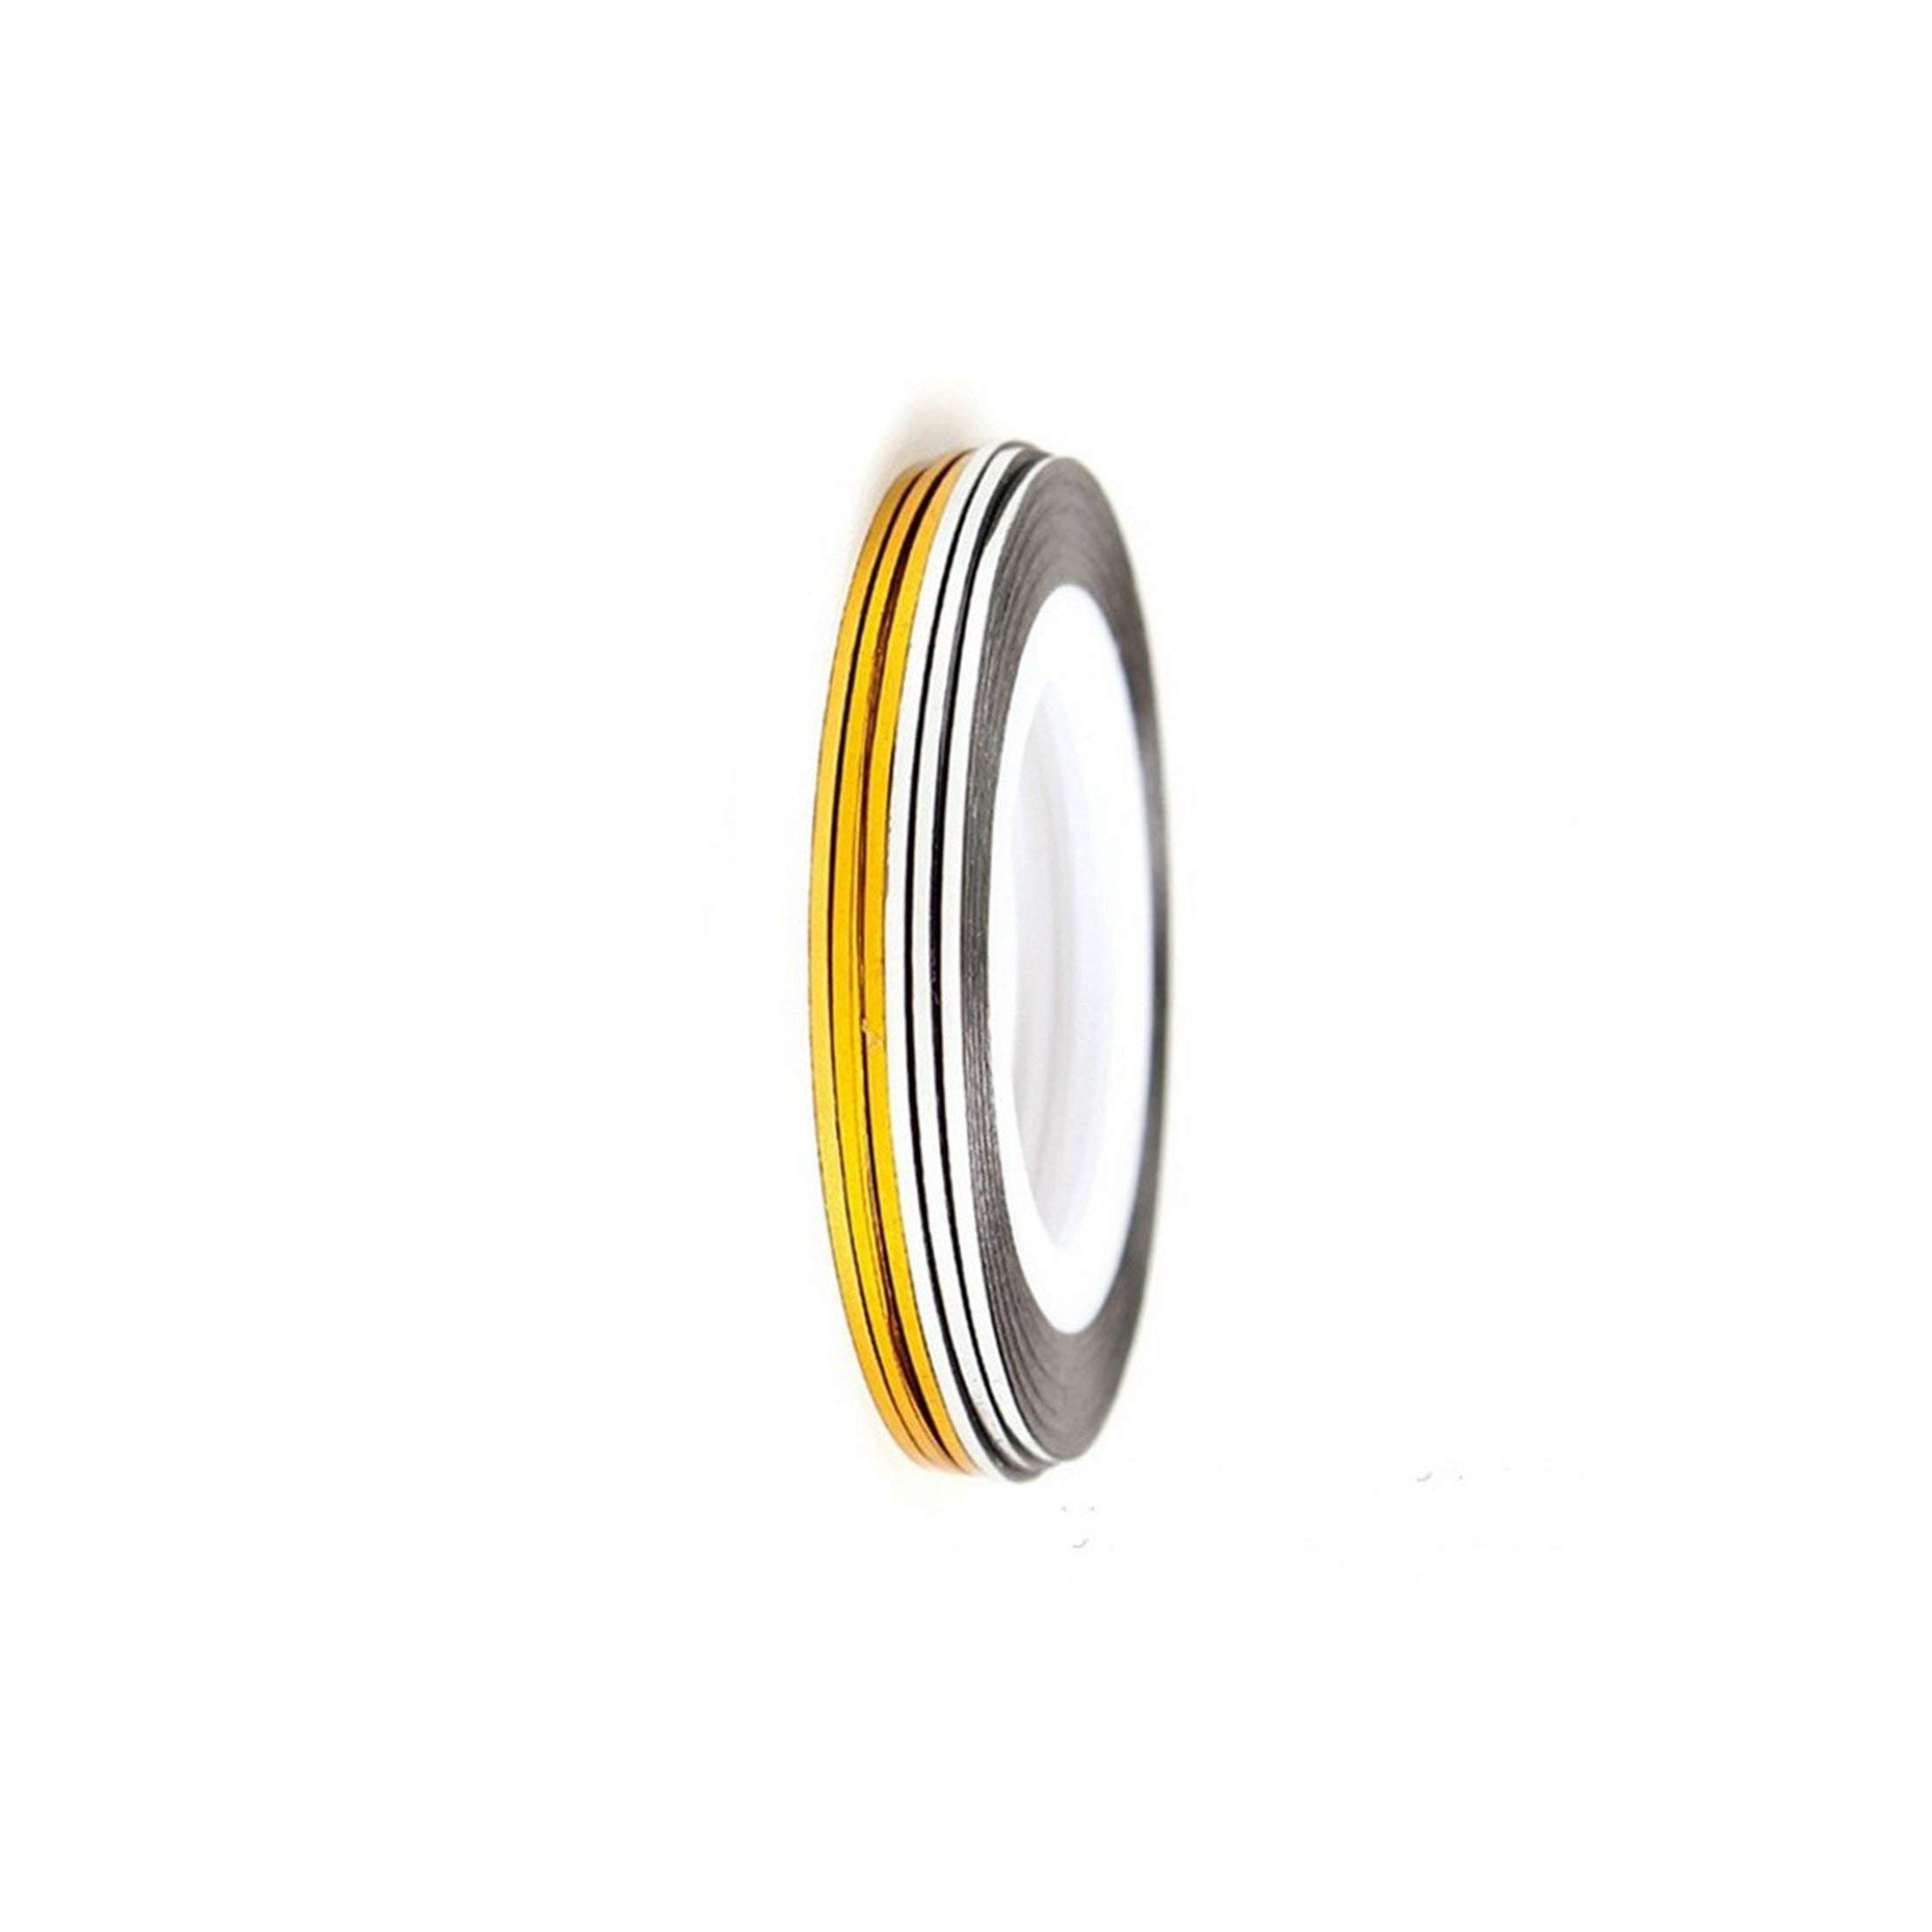 1 Rolls Nail Art Gold Silver Stripping Tape Line Strips Decorate Tools Nail Sticker Diy Beauty Accessories,1Pcs Silver Line by Mango-ice